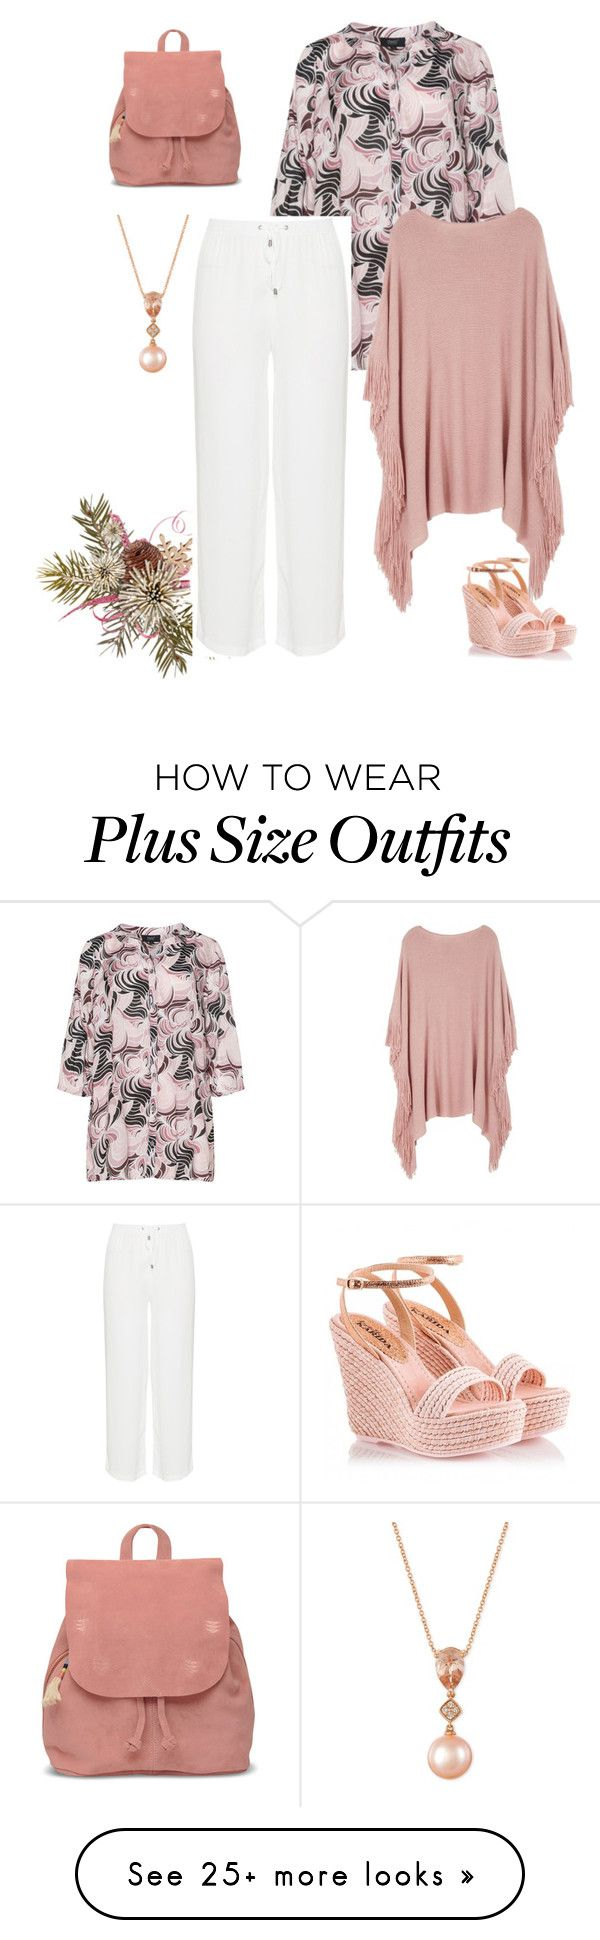 """plus size donna"" by aleger-1 on Polyvore featuring Zhenzi, Melissa McCarthy Seven7, Fratelli Karida, TOMS, LE VIAN and plus size clothing"